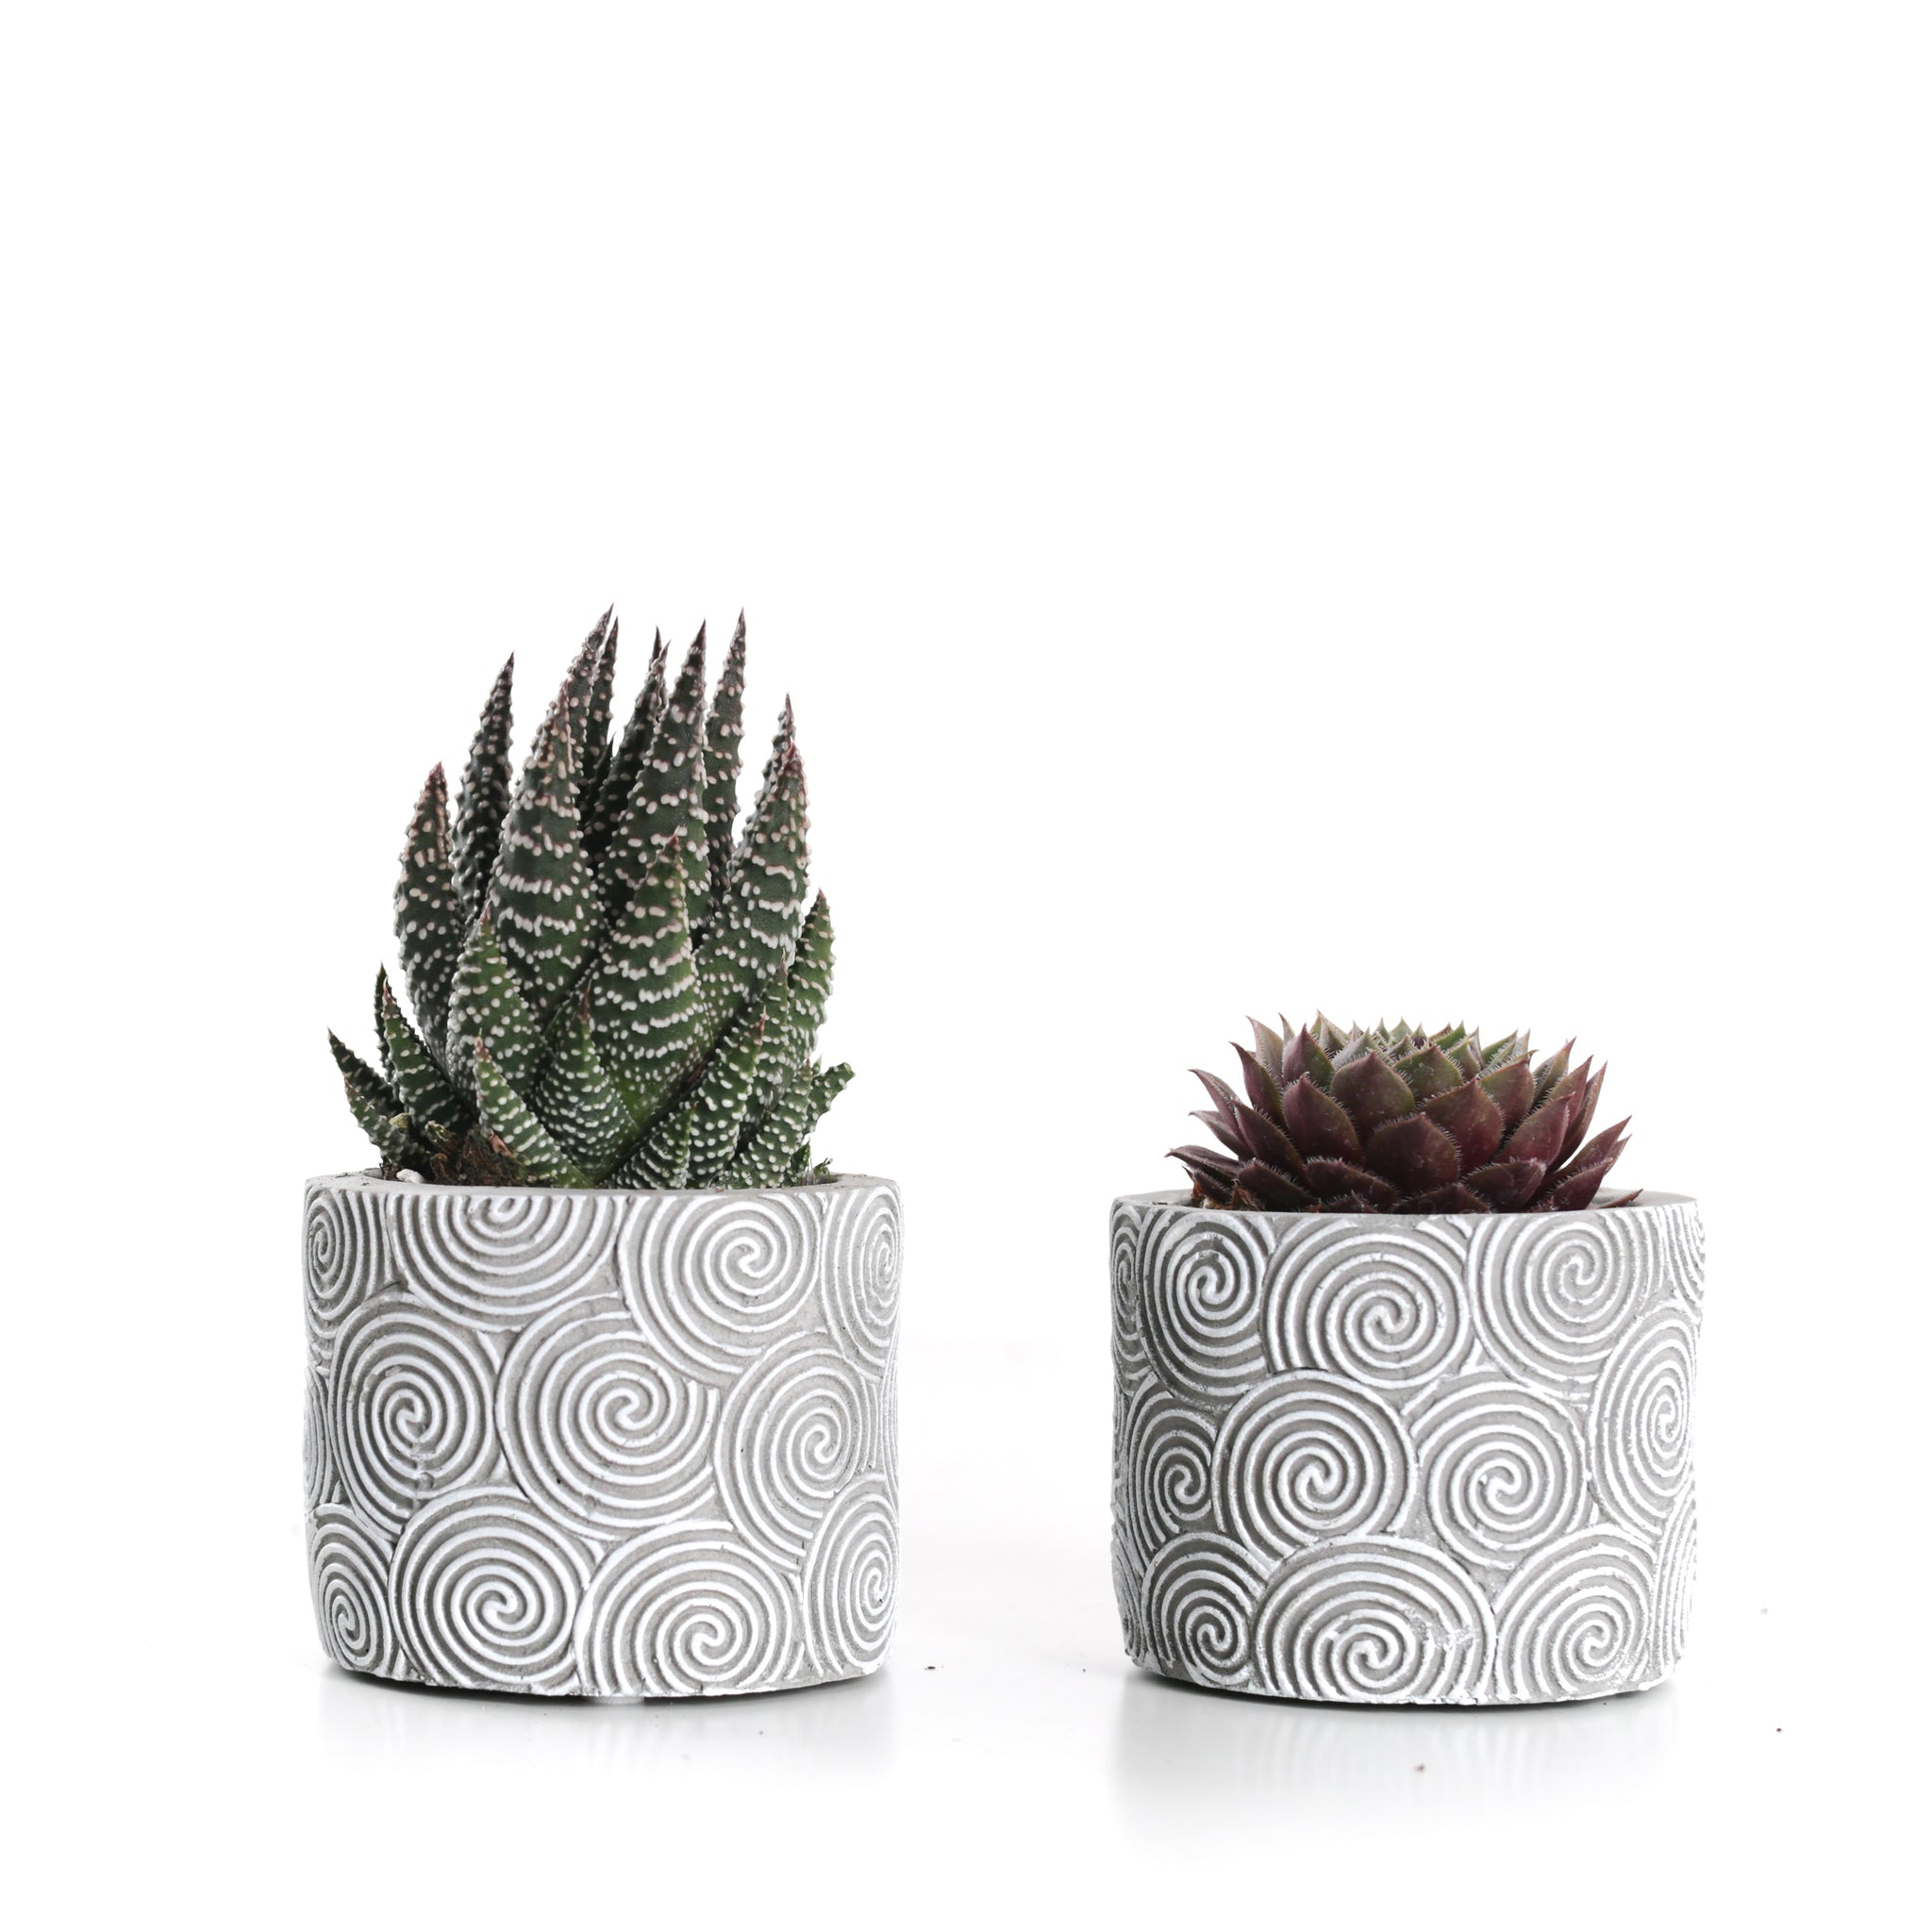 Mini Succulent in Grey Patterned Ceramic (Pack of 2)